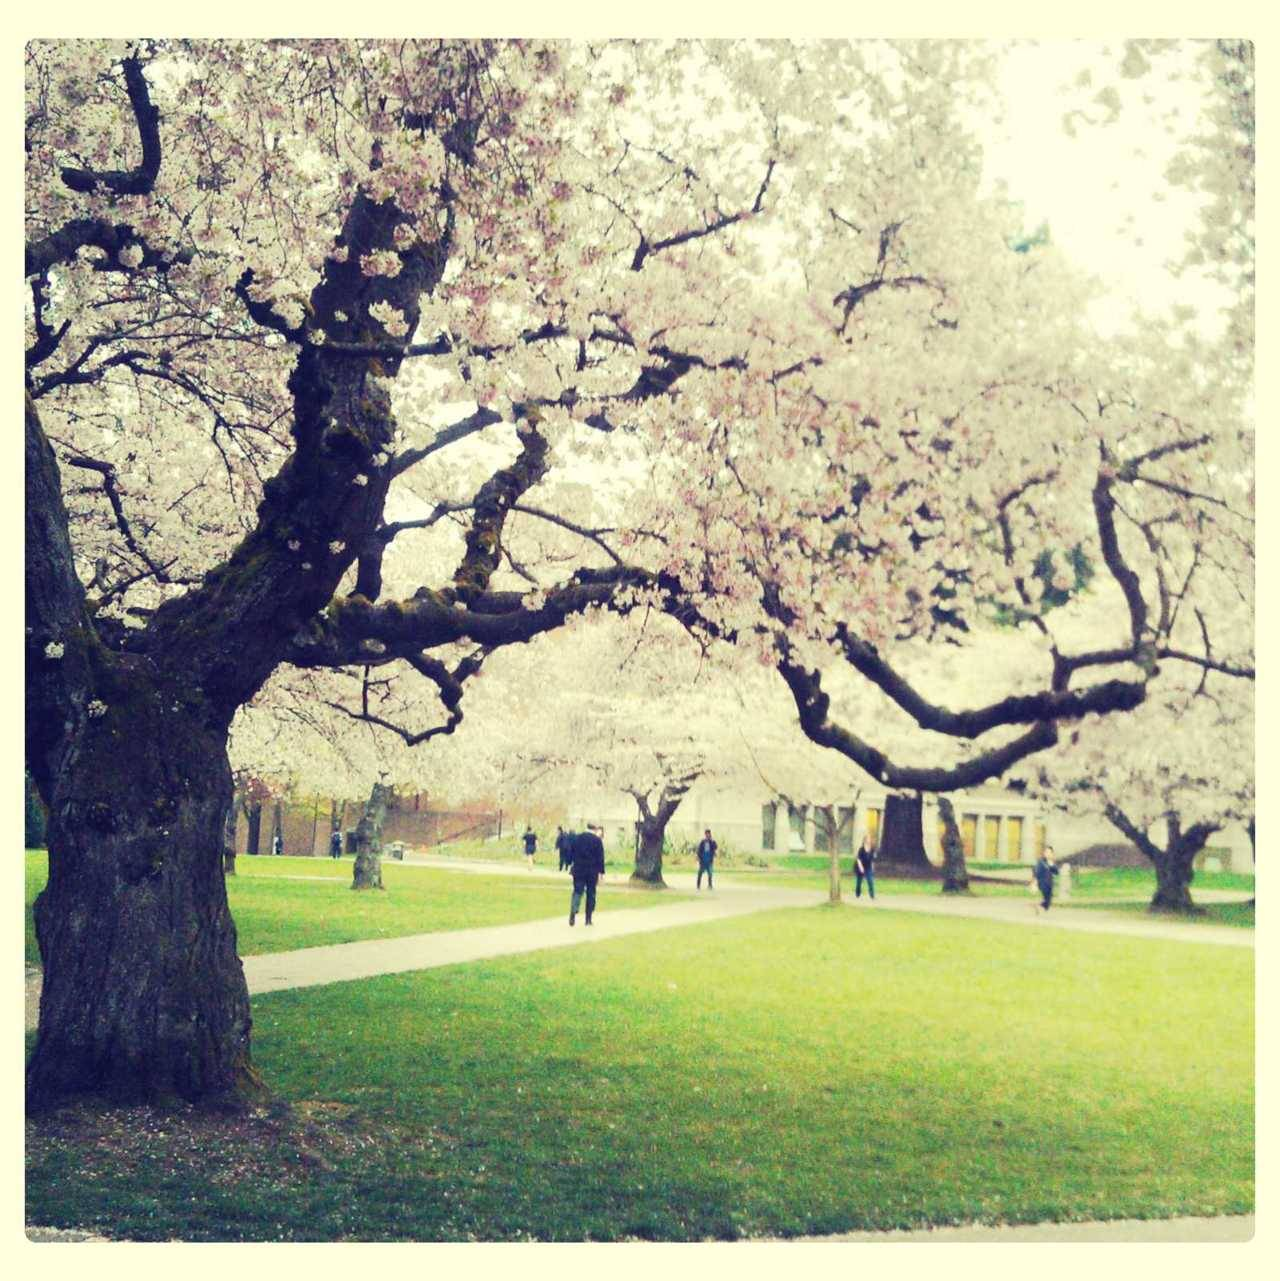 my last yr seeing the cherry blossom trees @ uw as an undergraduate!